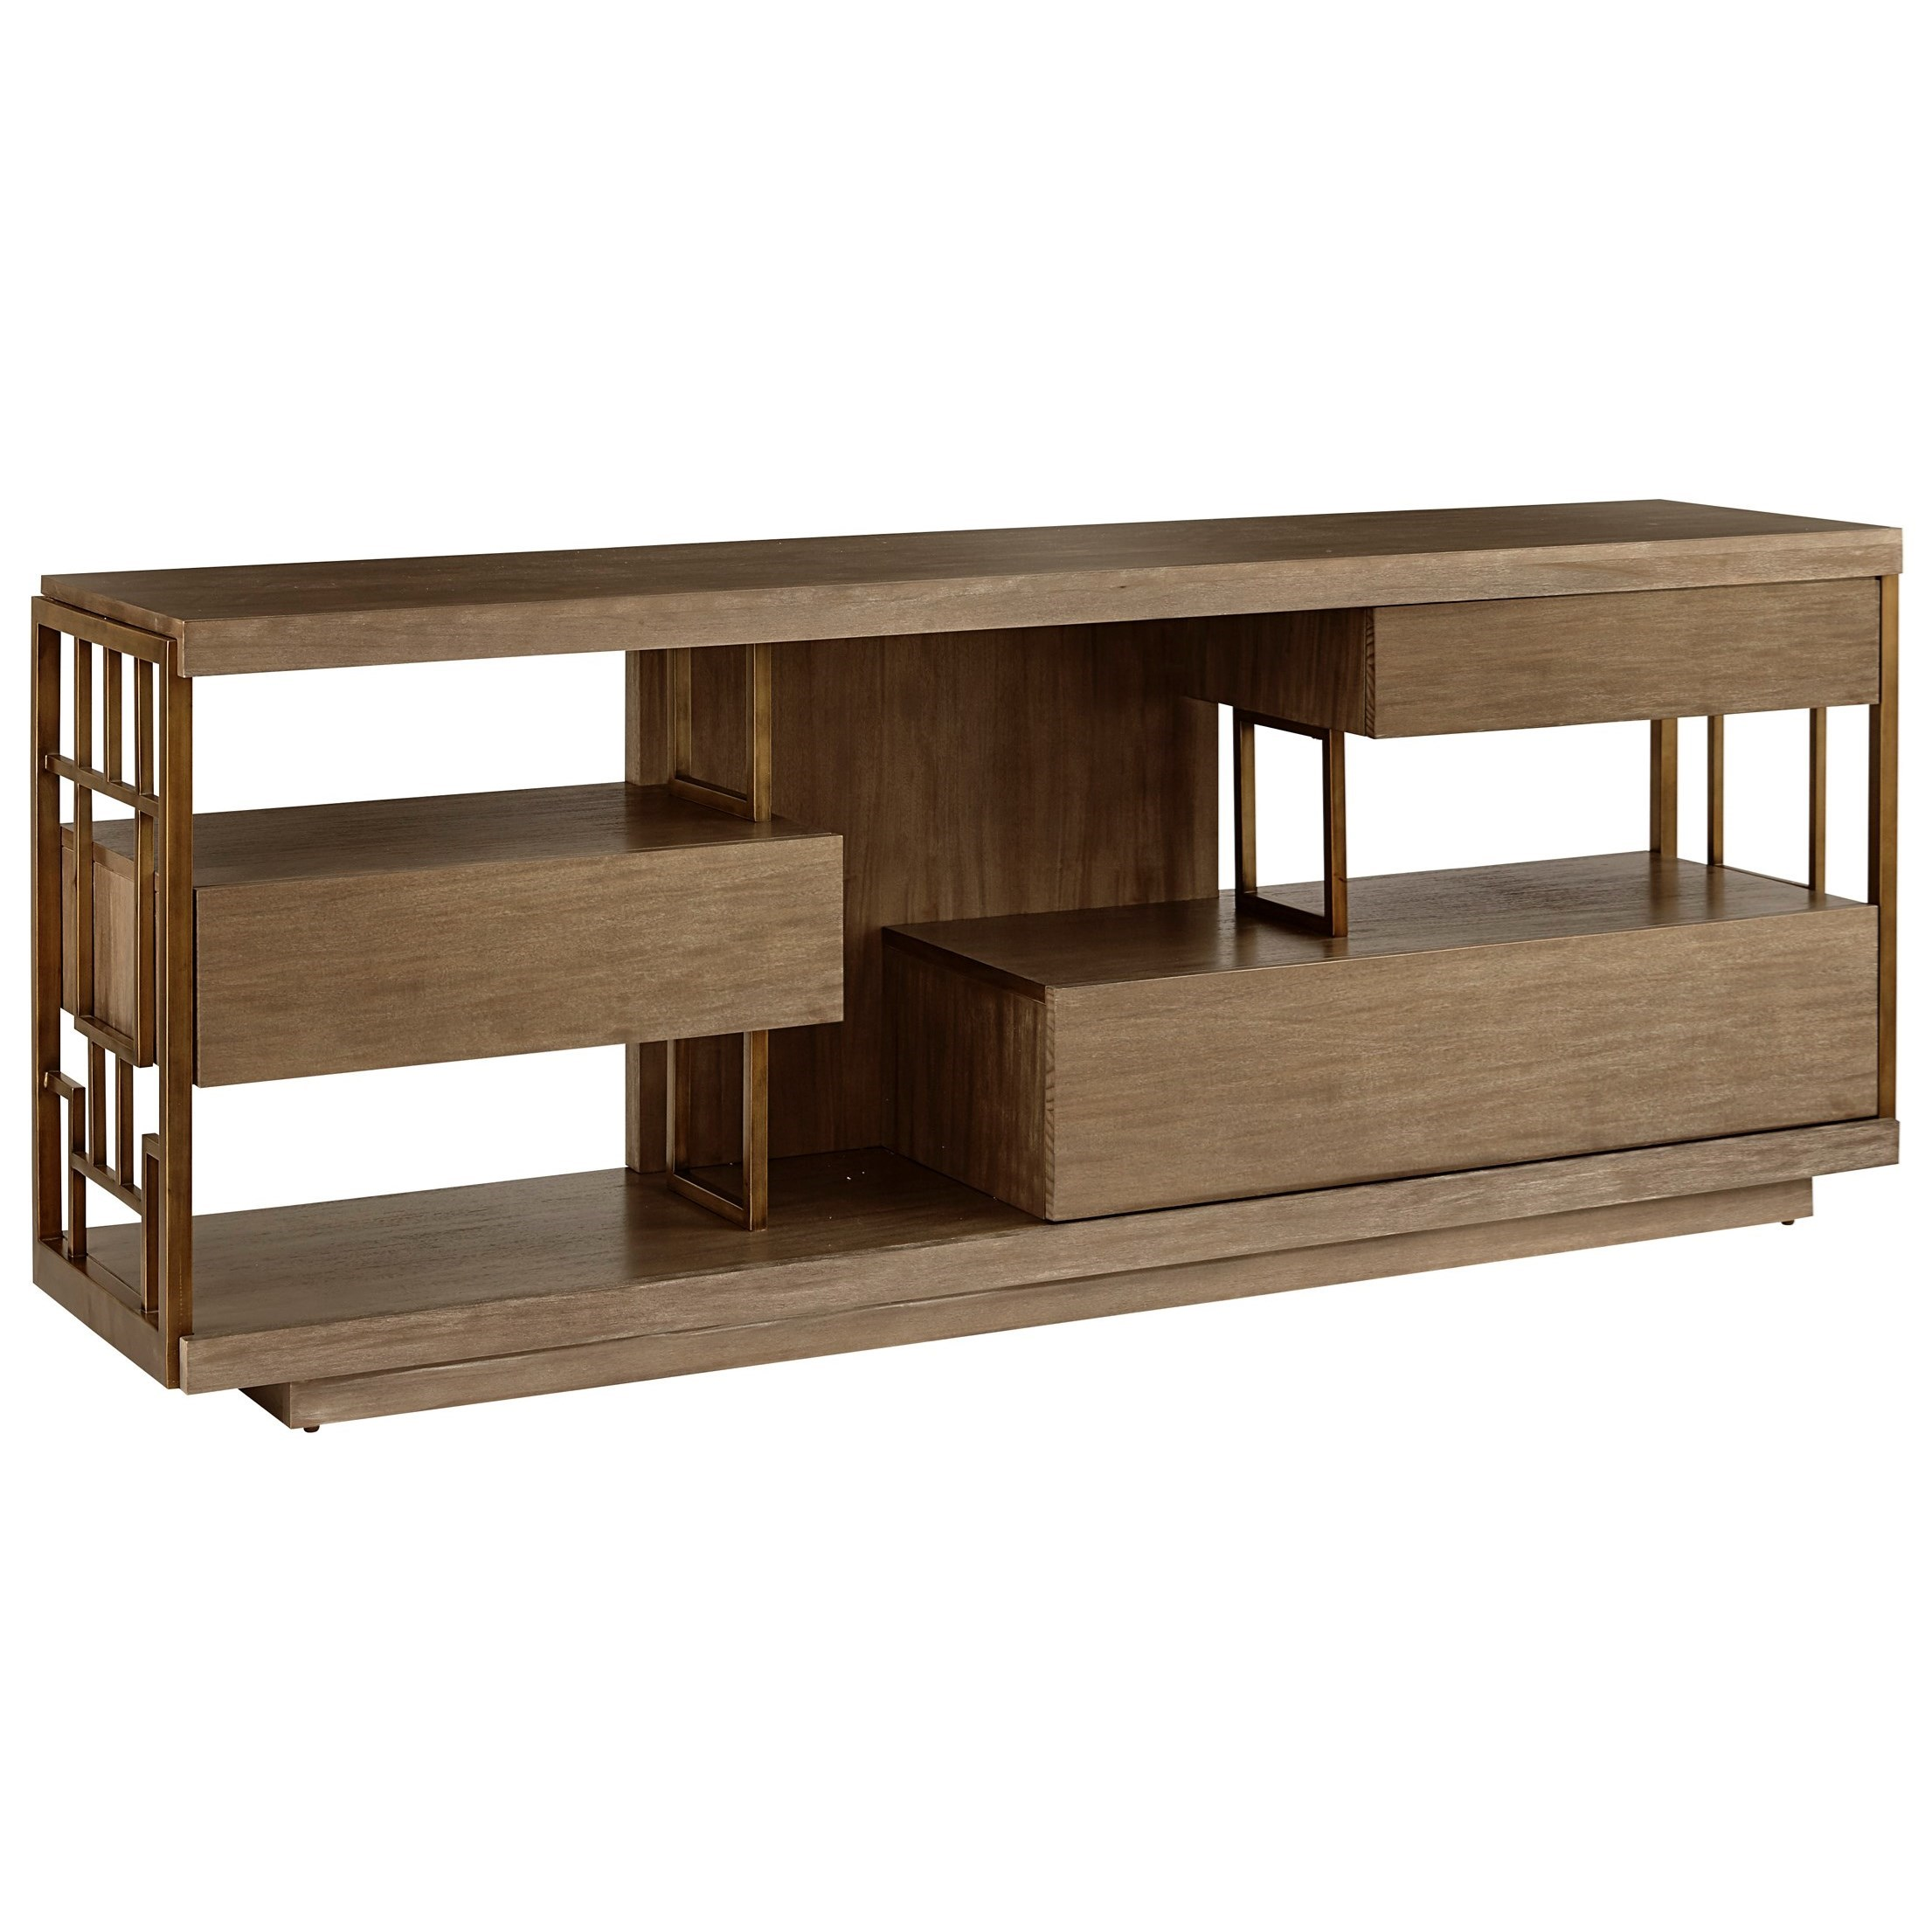 WoodWright Neutra Entertainment Console  by Klien Furniture at Sprintz Furniture